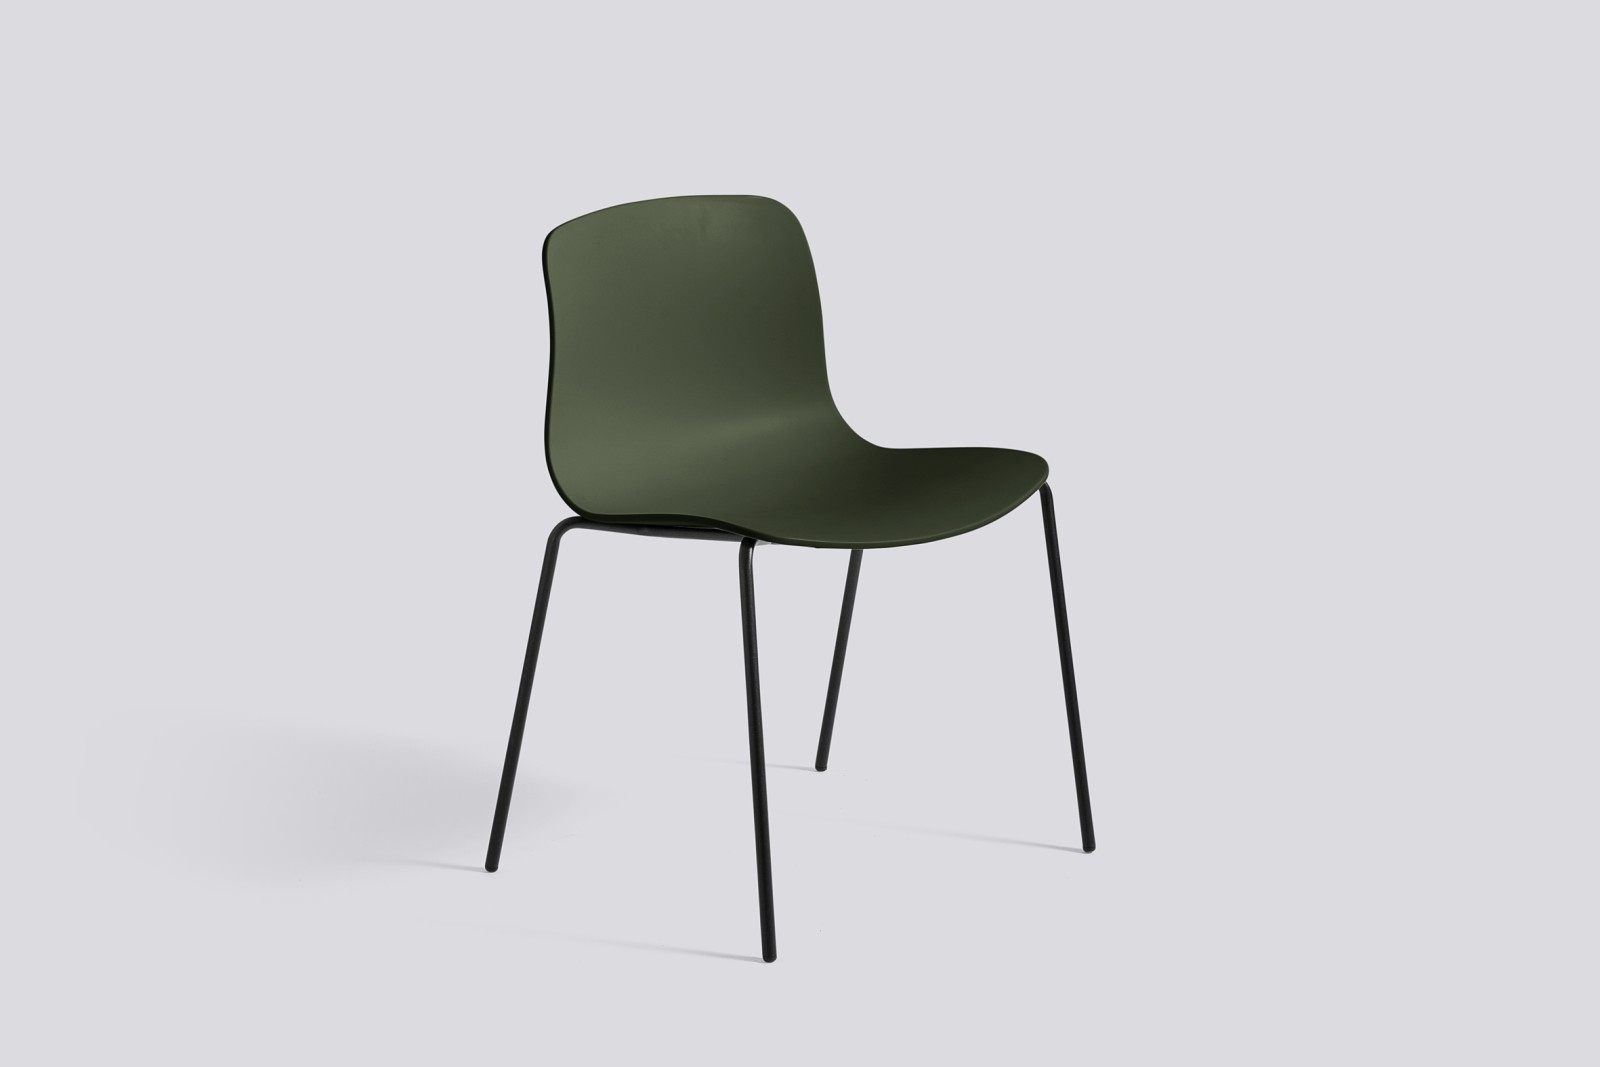 About A Chair AAC16 Green, Black Powder Coated Steel